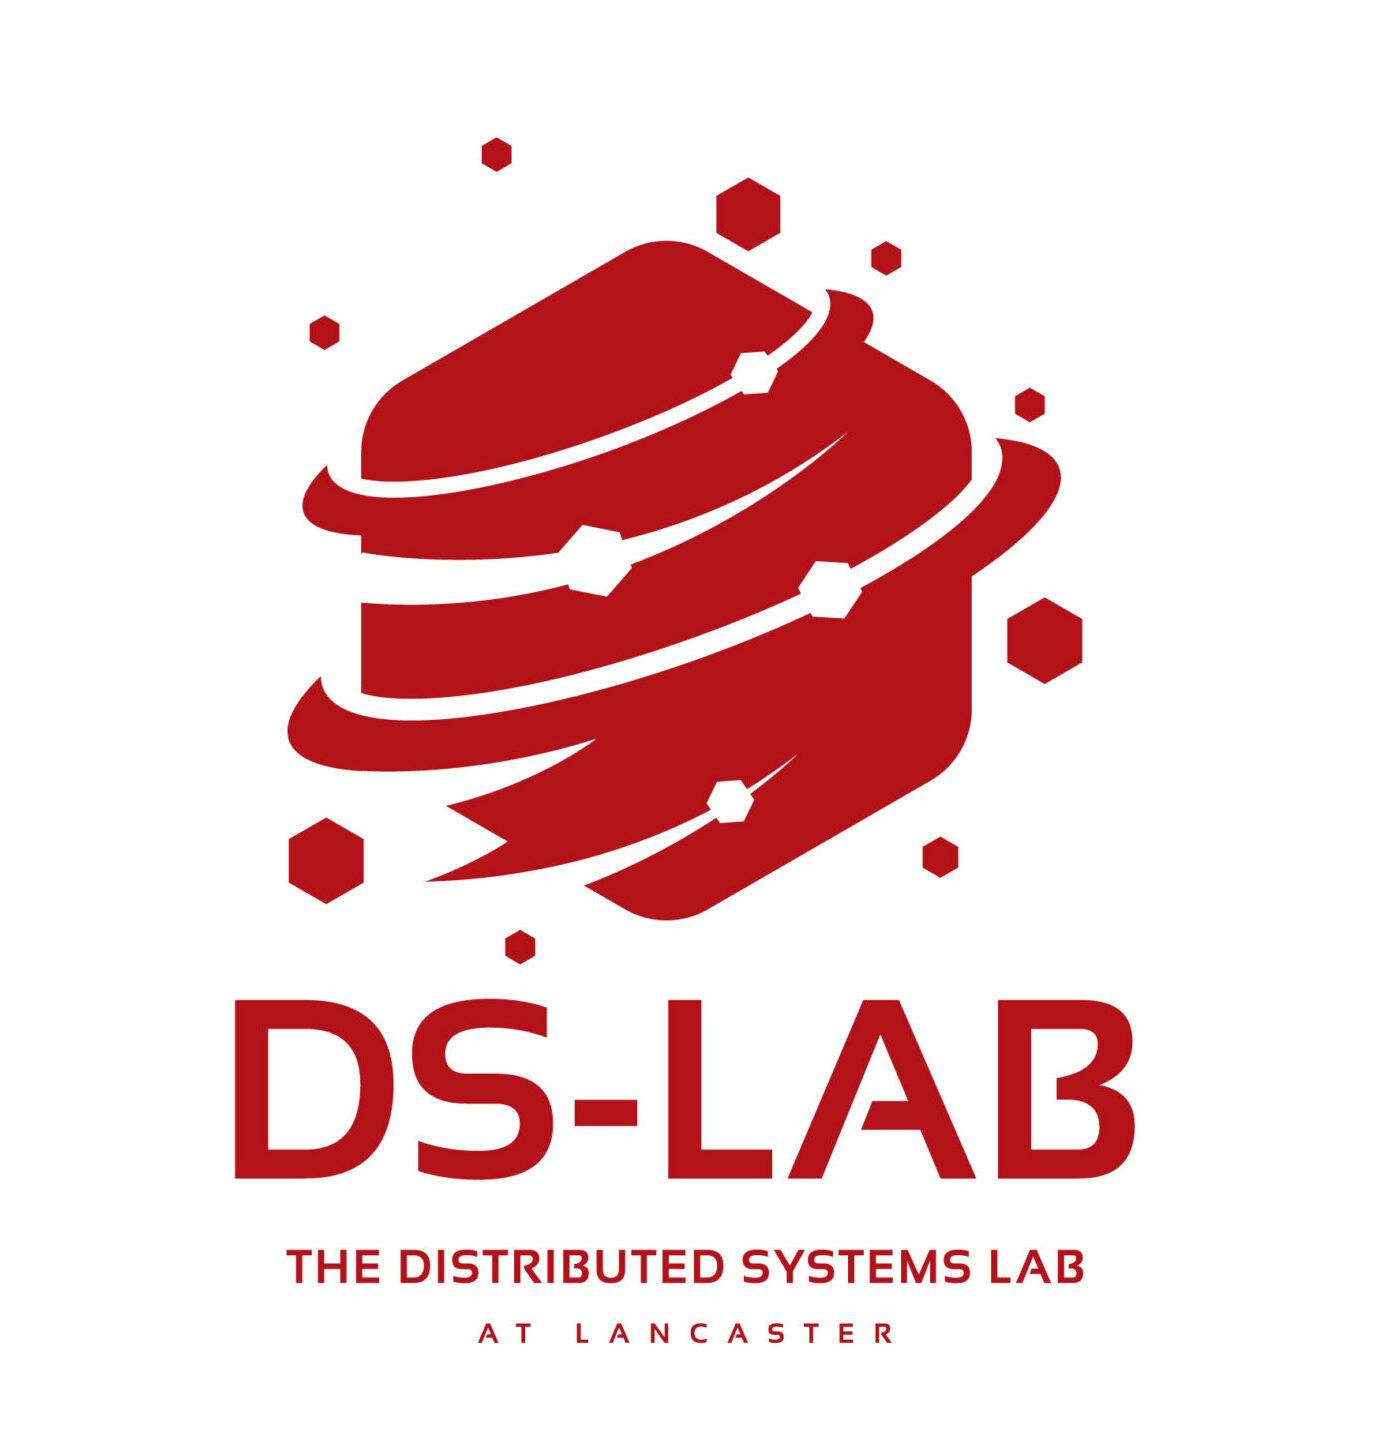 Distributed Systems Lab